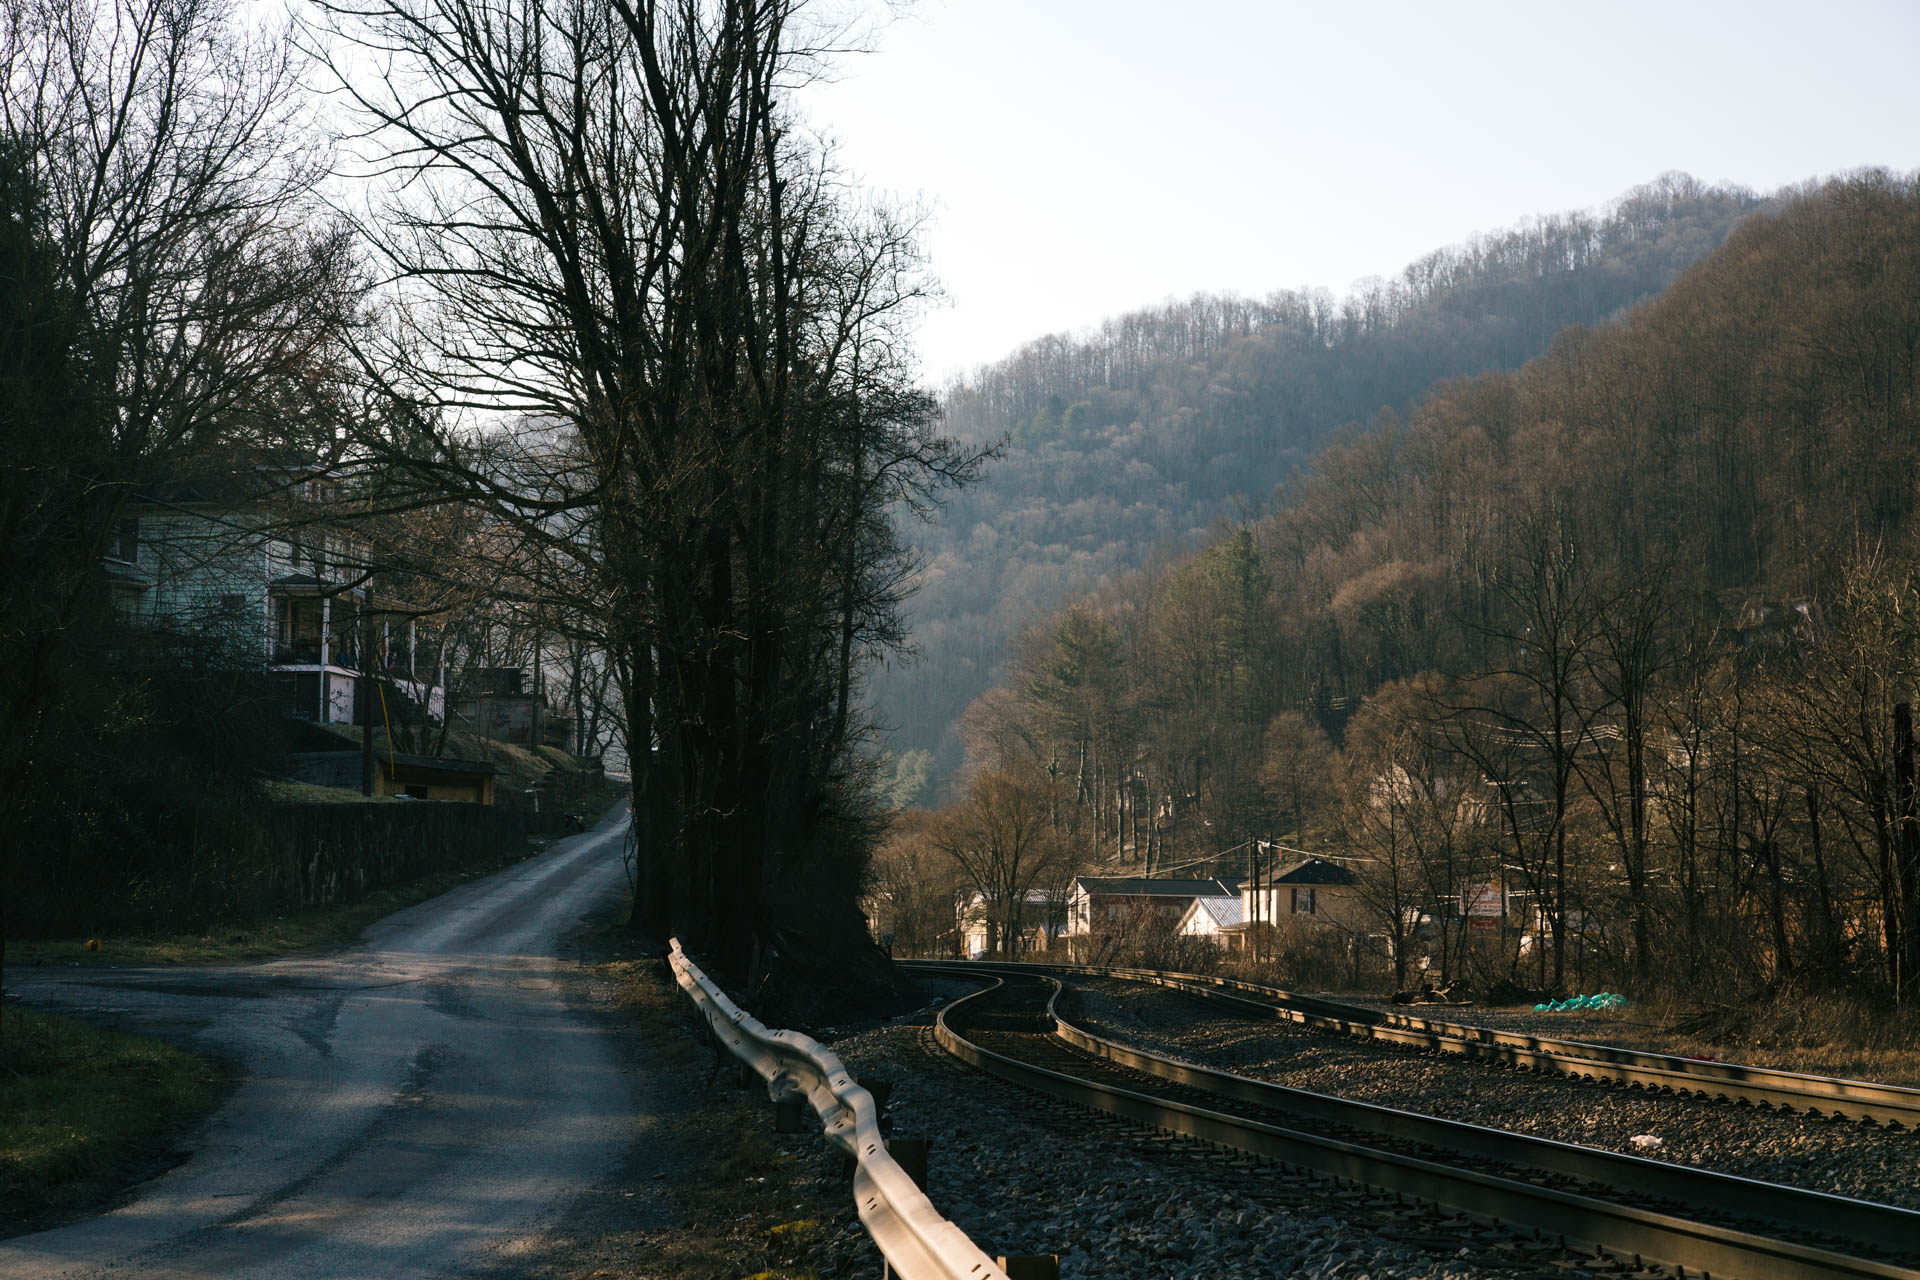 northfork-west-virginia-train-tracks-single-lane-road.JPG